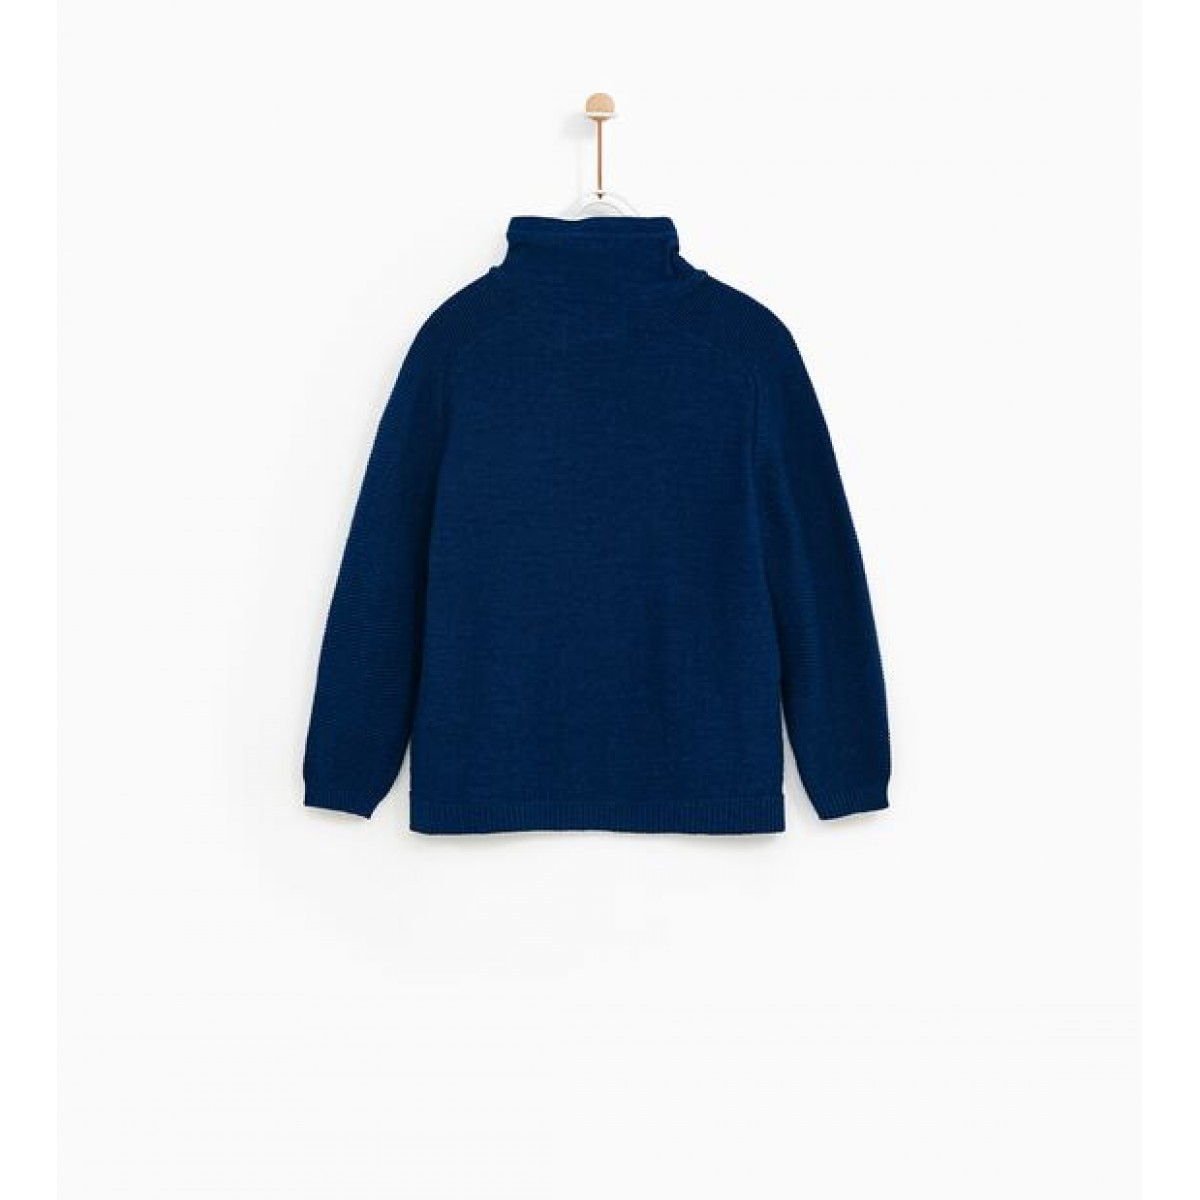 Zara Sweater With Wraparound Turtleneck